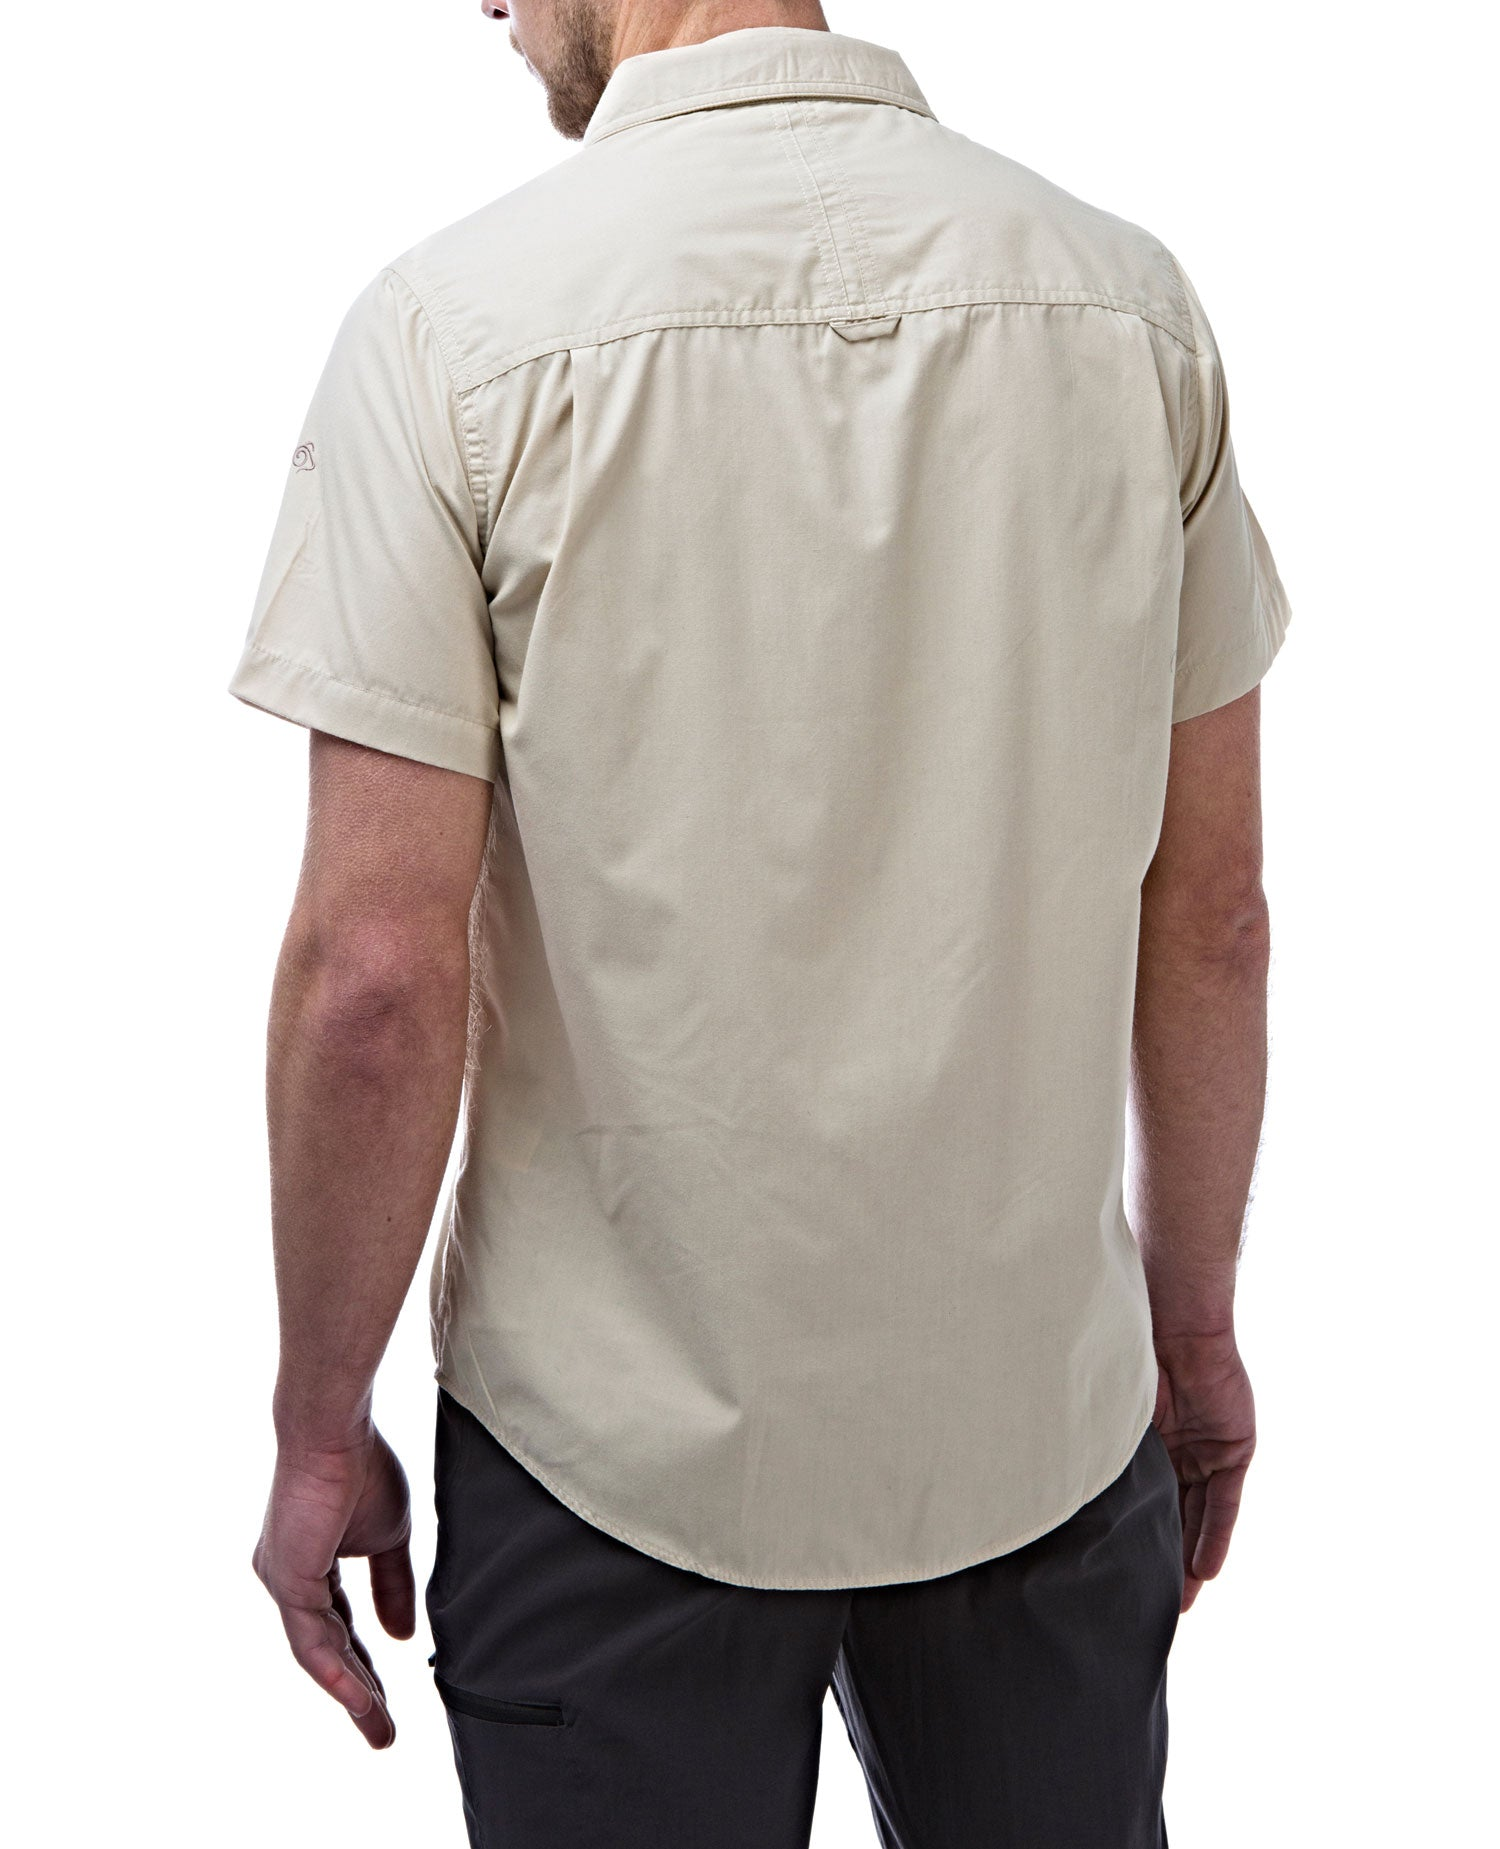 rear view oatmeal Man's Bush shirt with short sleeves